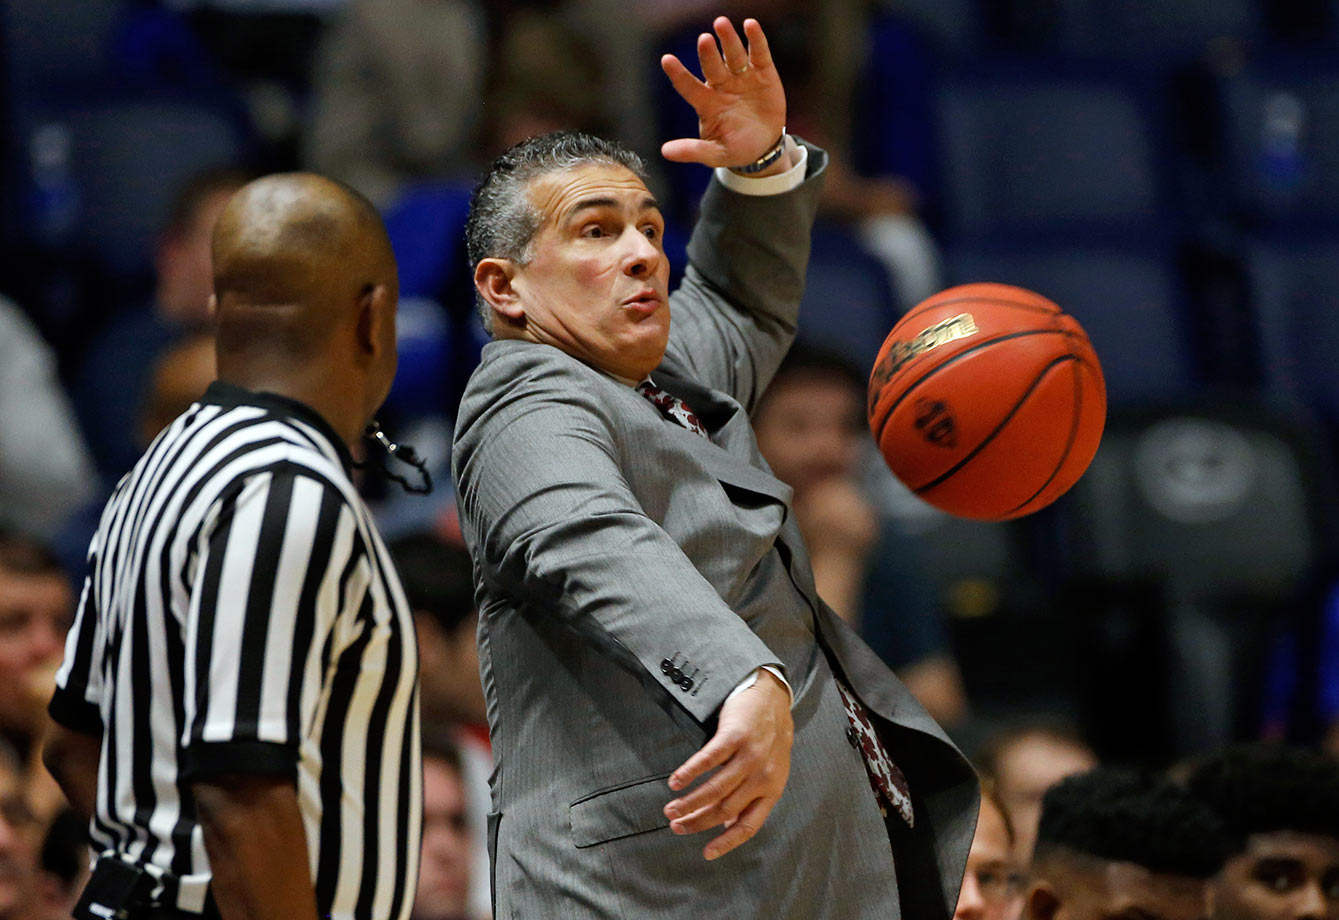 South Carolina head coach Frank Martin dodges a basketball as it sails out of bounds during the first half of their SEC Tournament game against Georgia in Nashville.